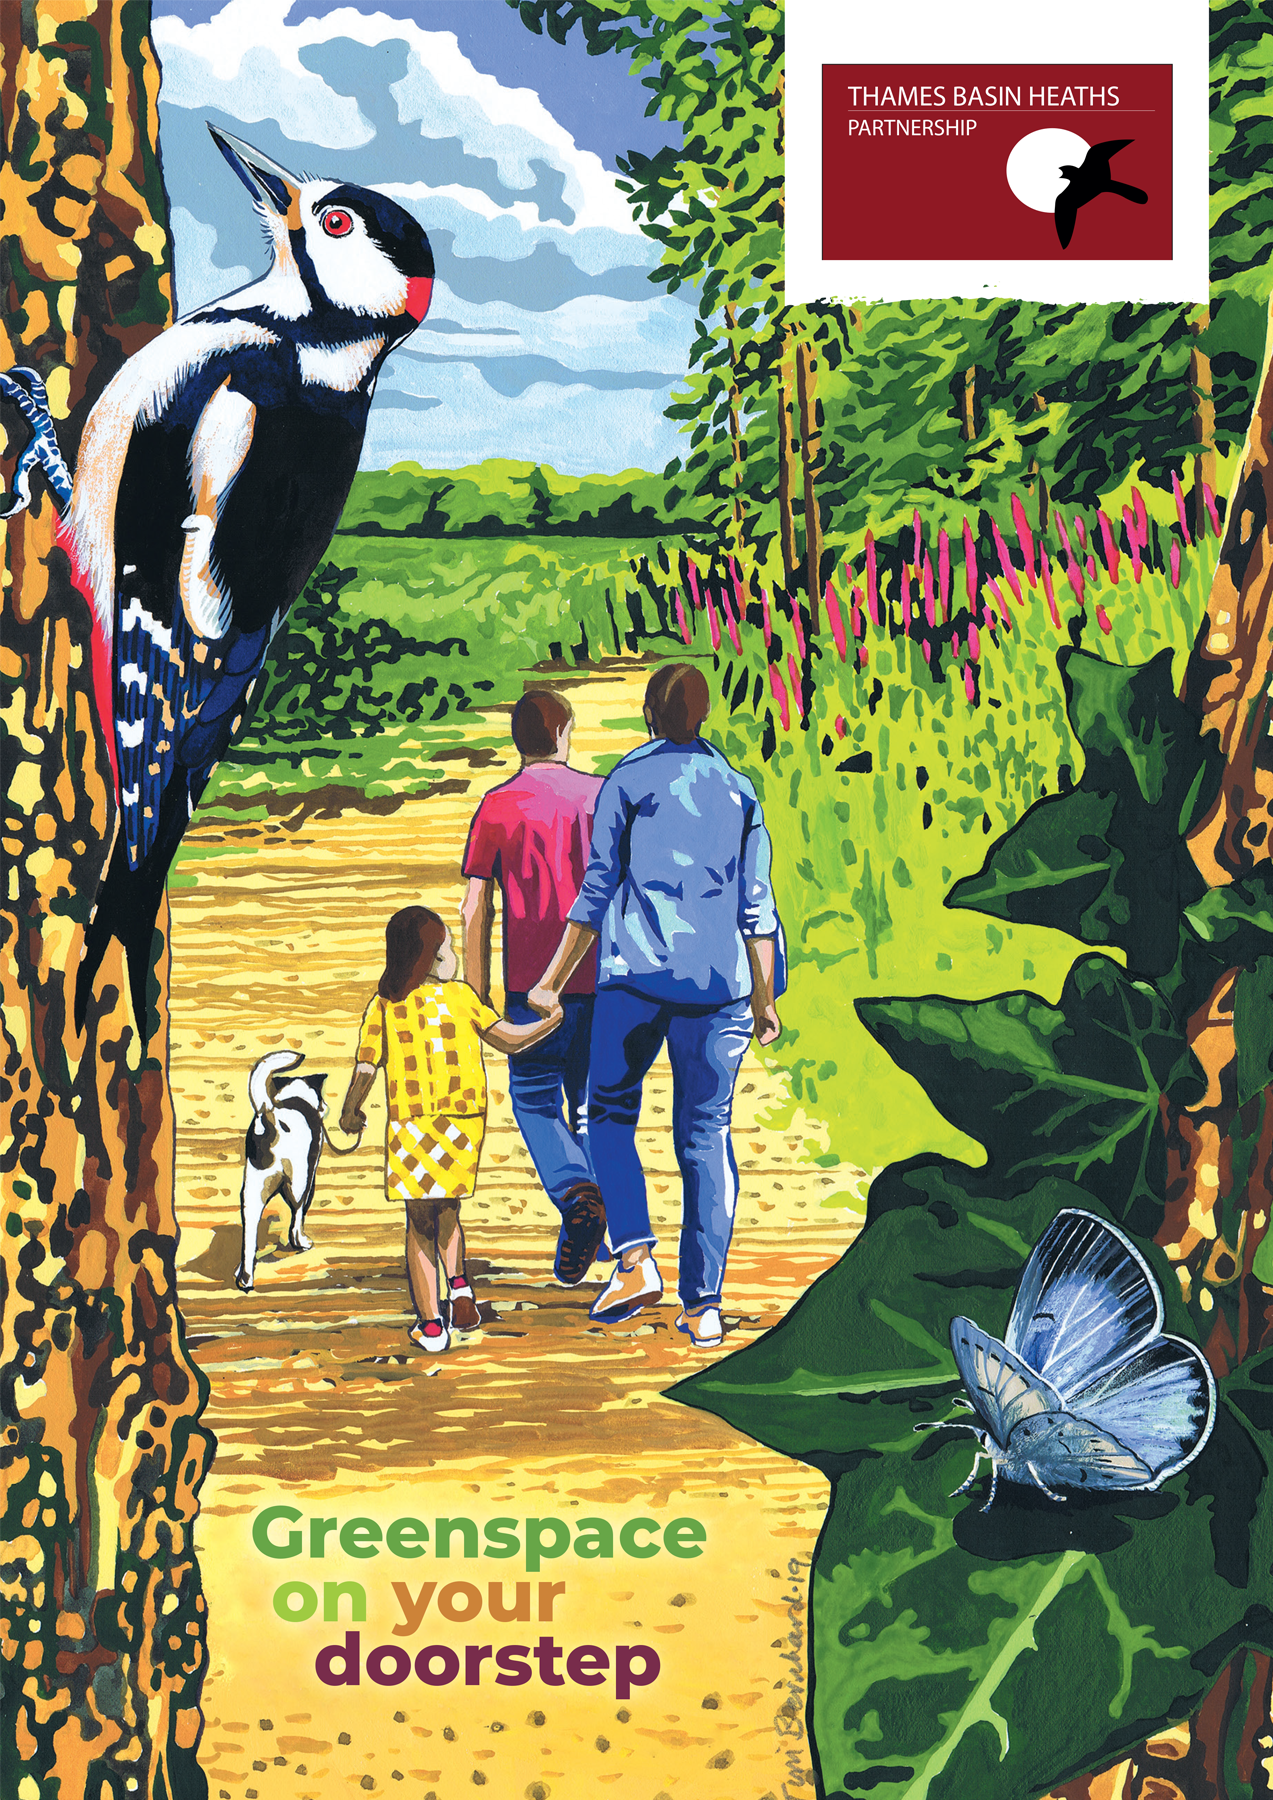 Greenspace on your doorstep leaflet cover image